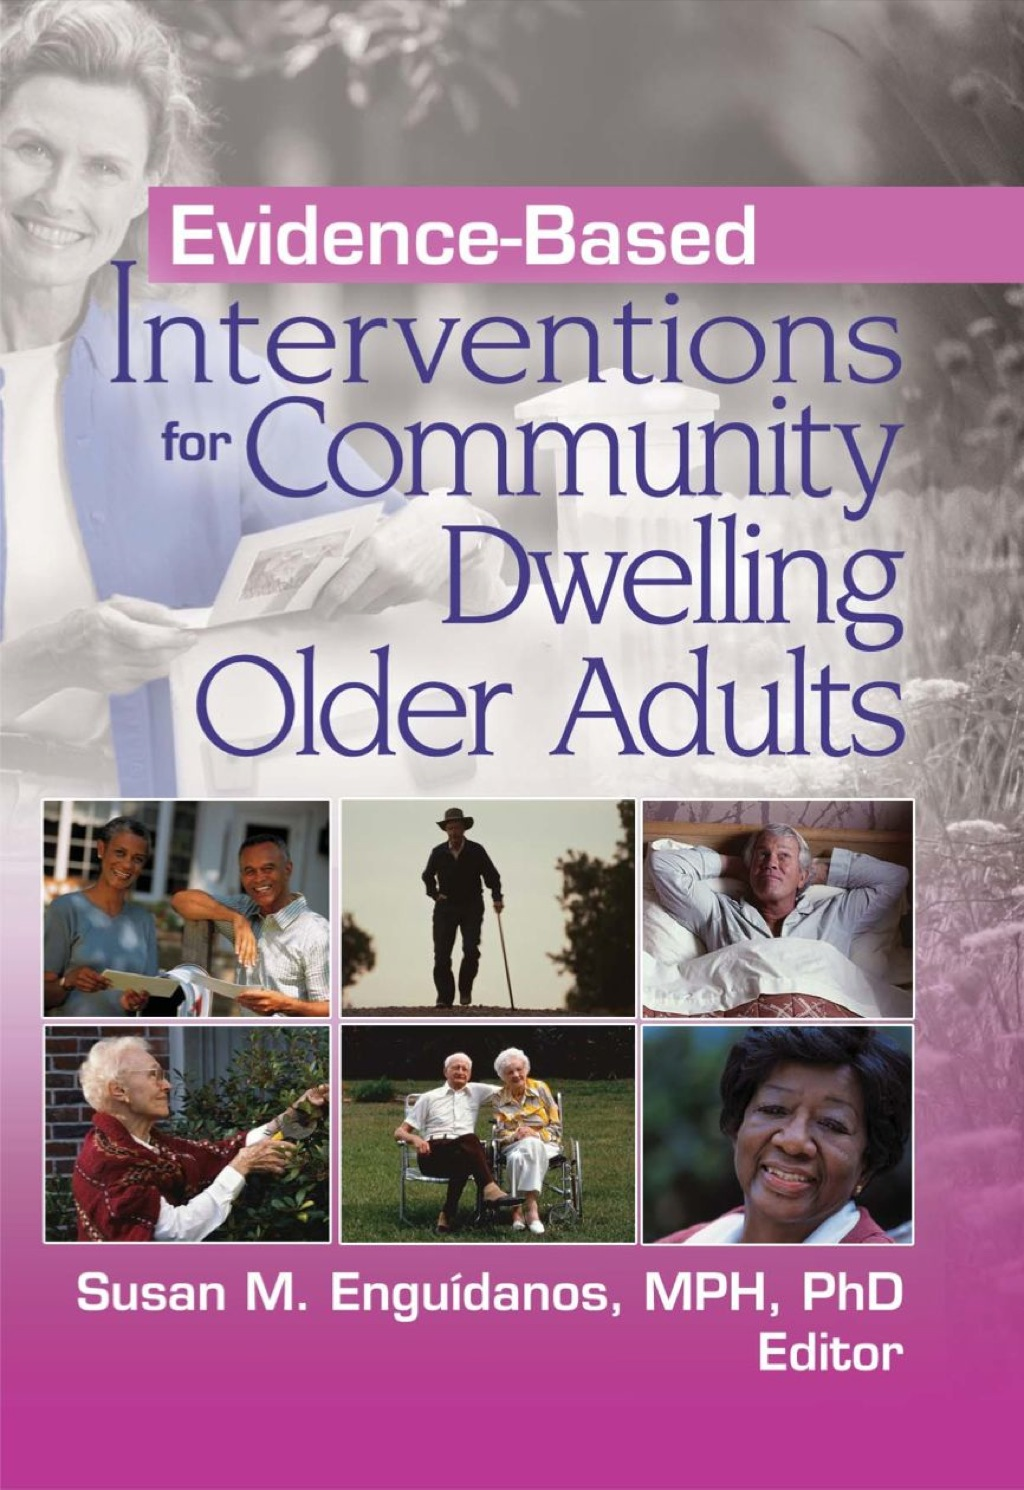 Evidence-Based Interventions for Community Dwelling Older Adults (eBook Rental)